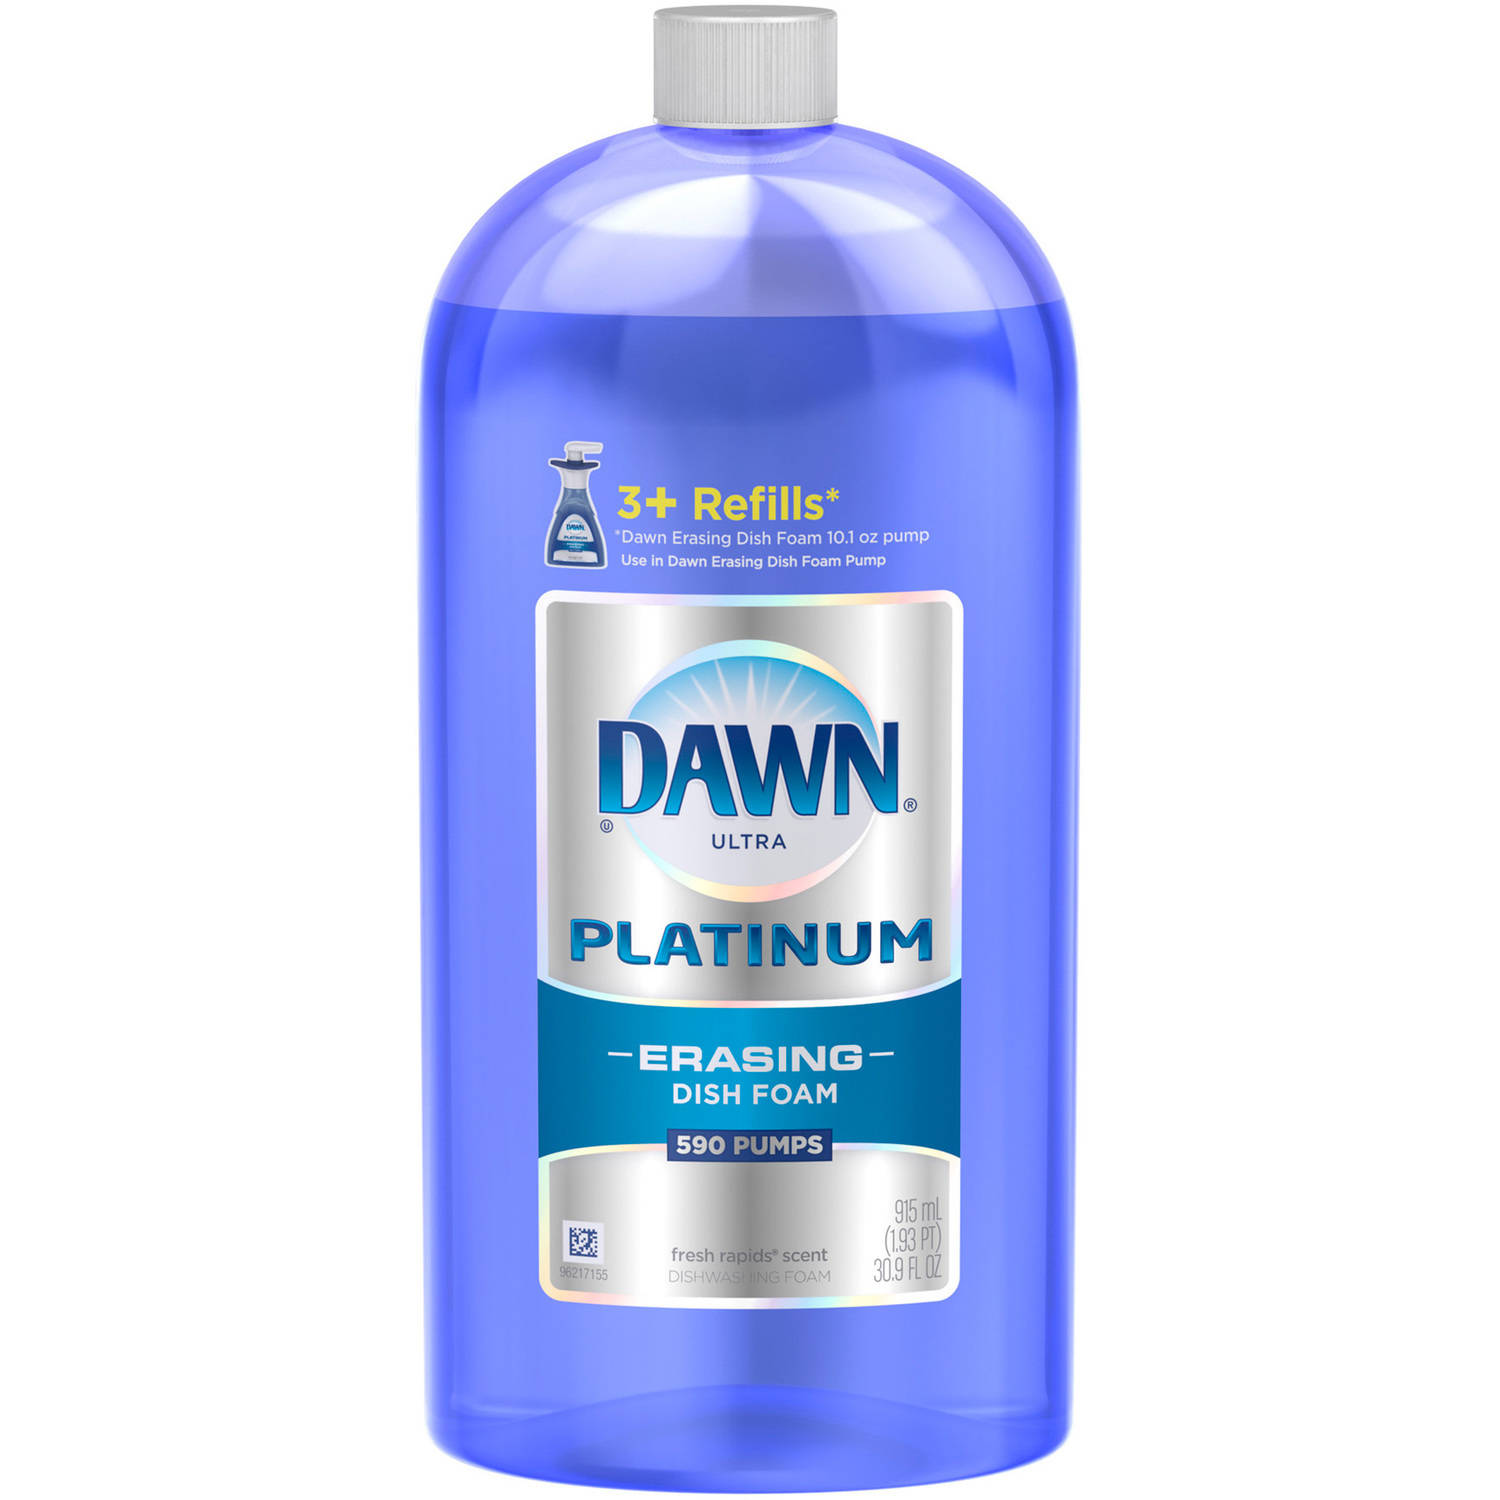 Dawn Platinum Erasing Dishwashing Foam Refill Fresh Rapids Scent 30.9 Fl Oz